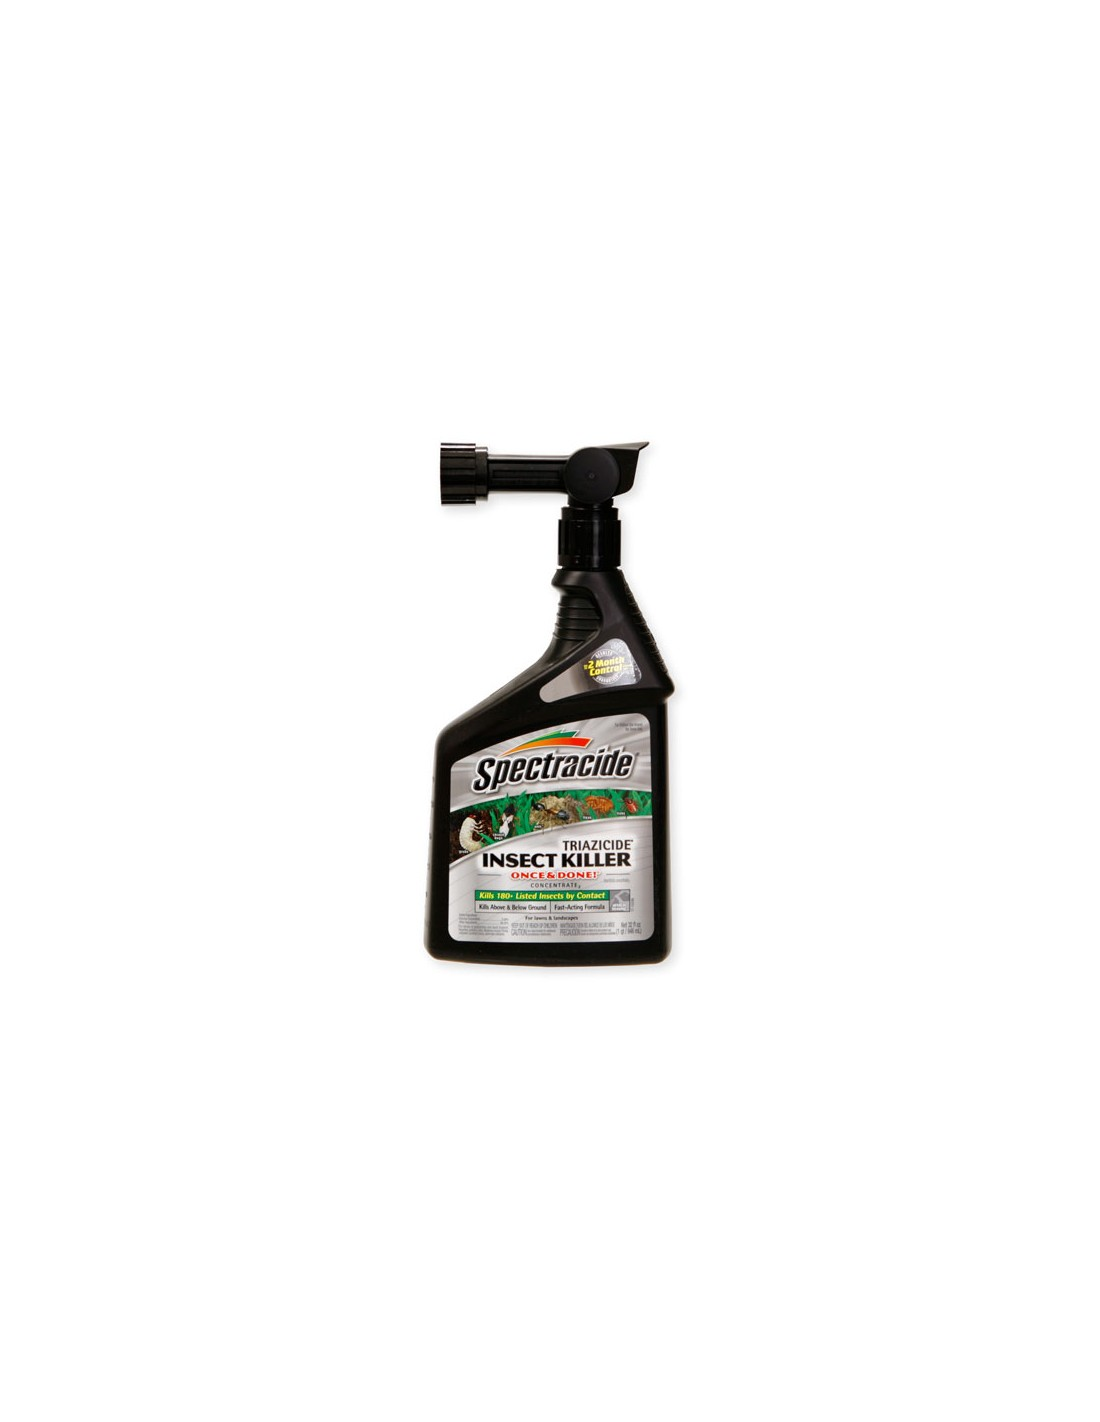 does it kill spiders